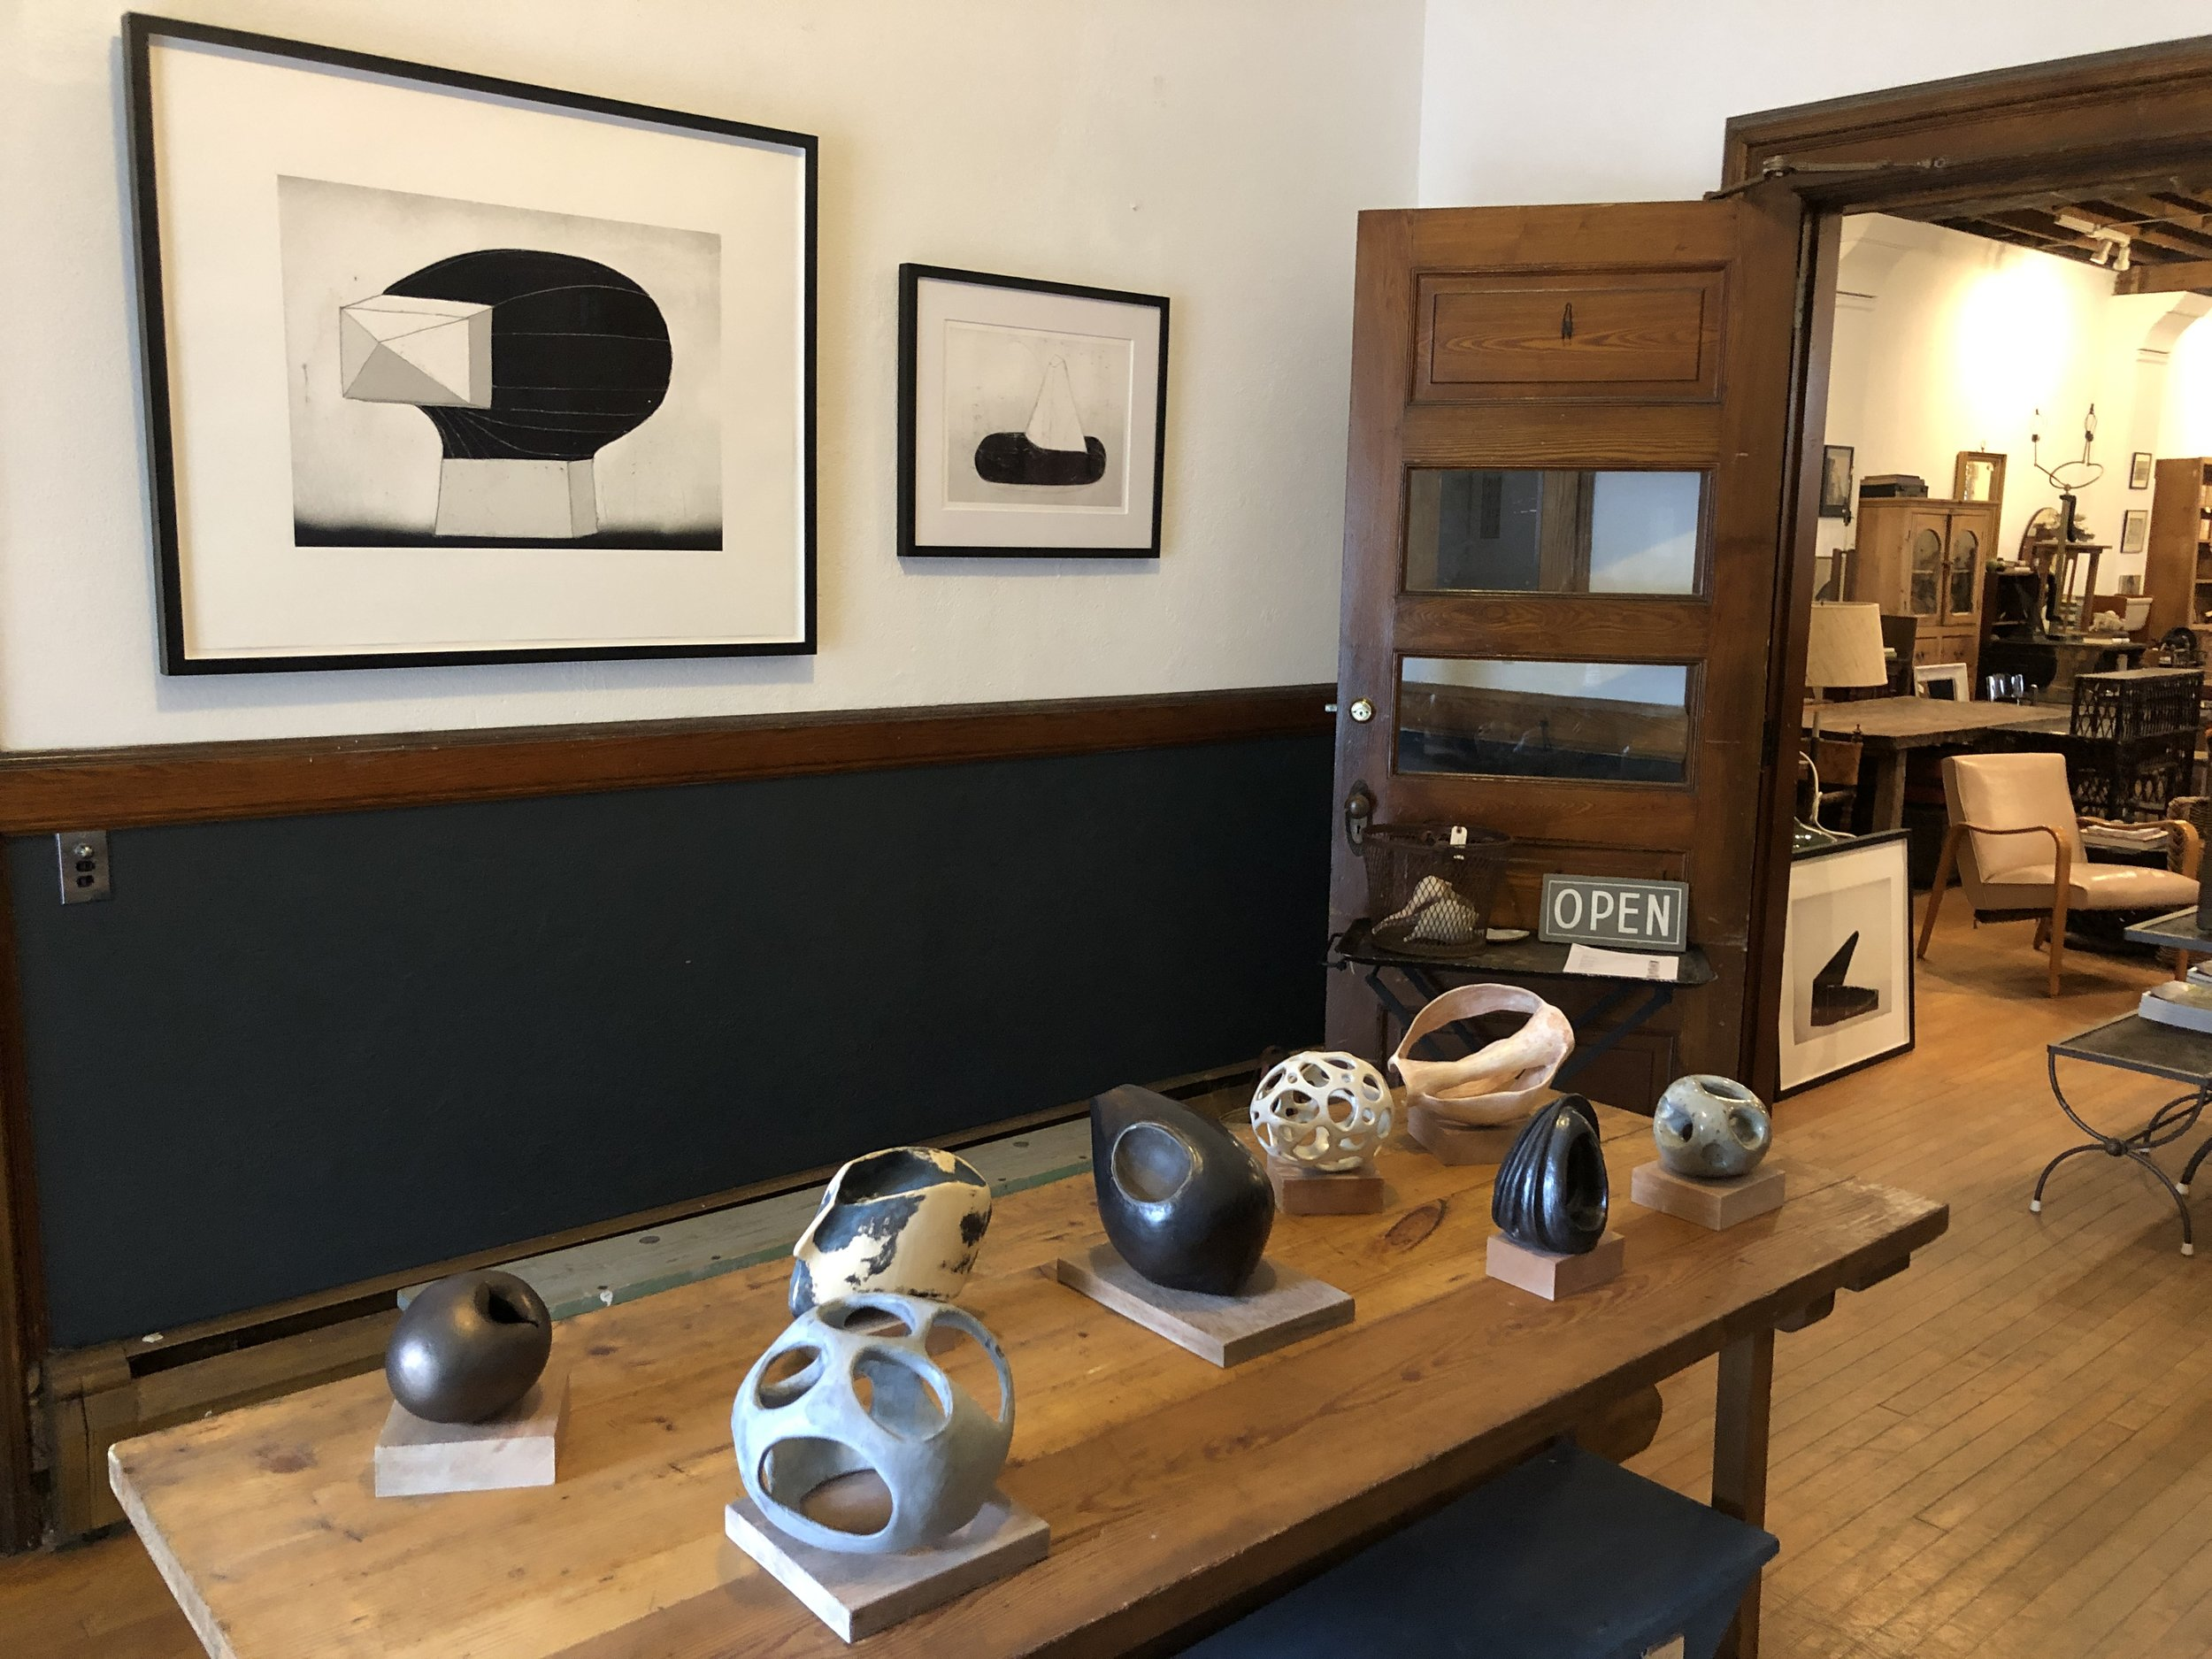 Exhibit at Beall & Bell, Greenport Village